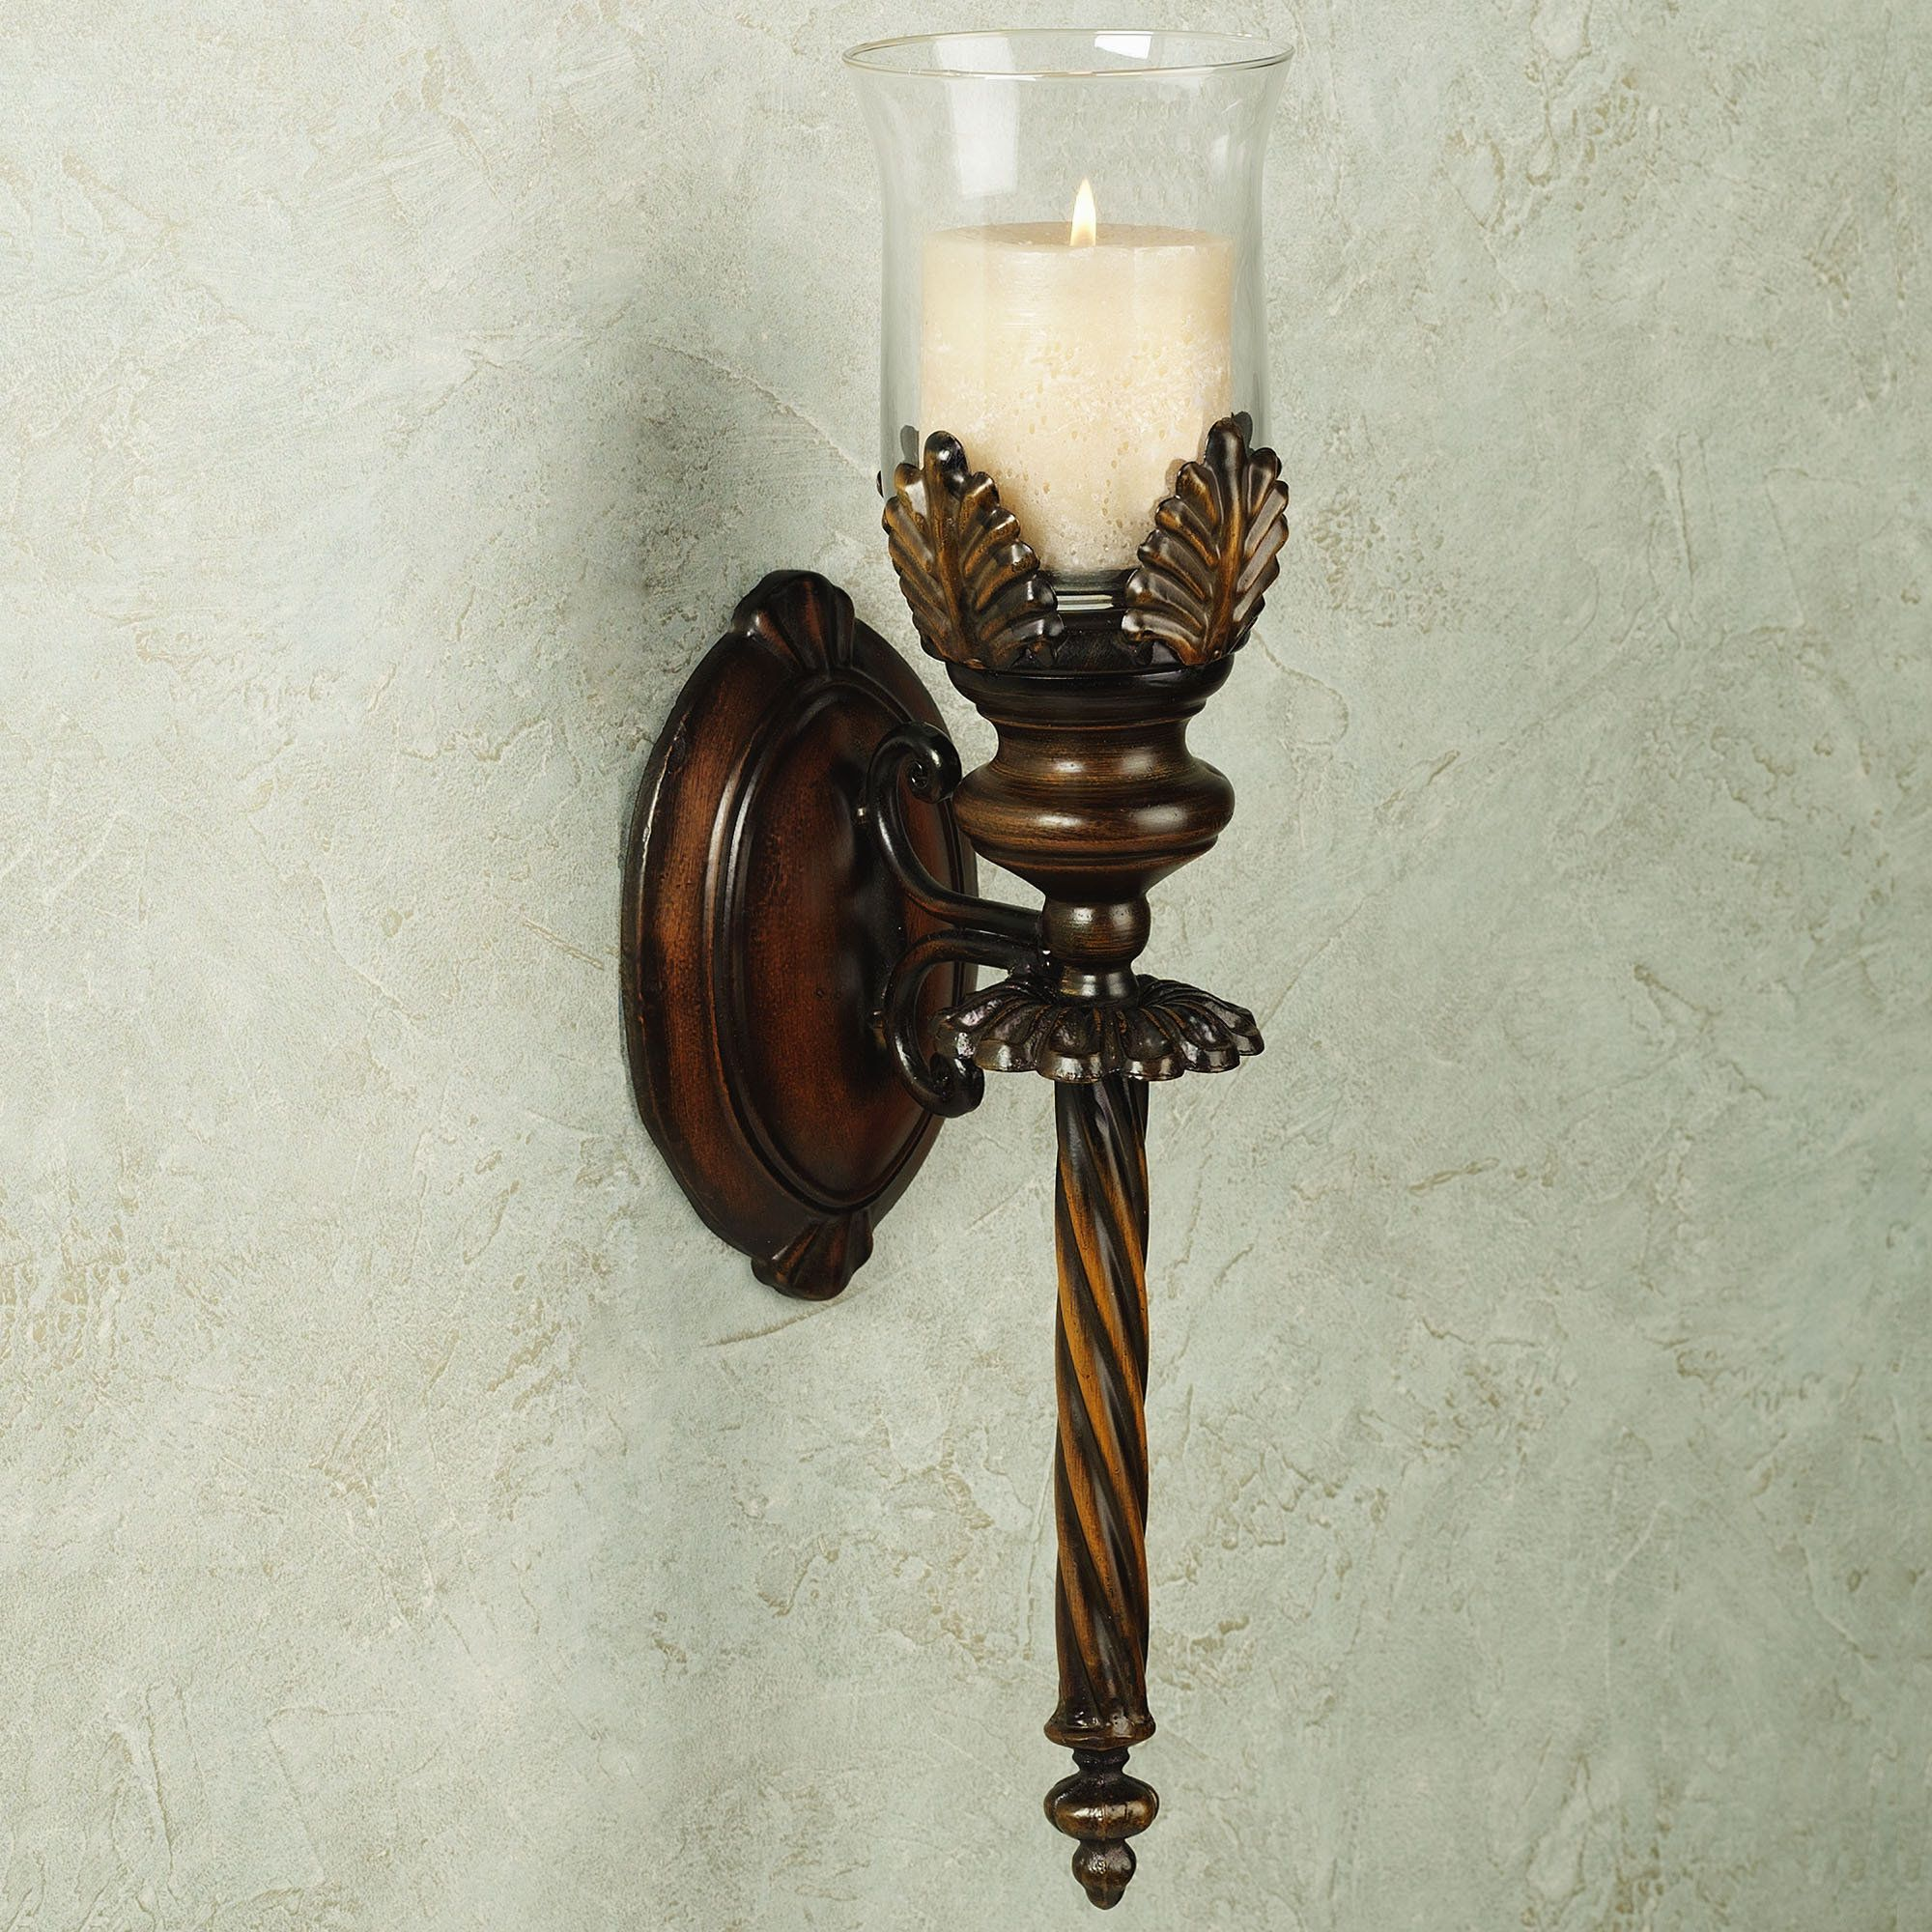 Emmerson wall sconce pair wall sconces traditional lighting and walls